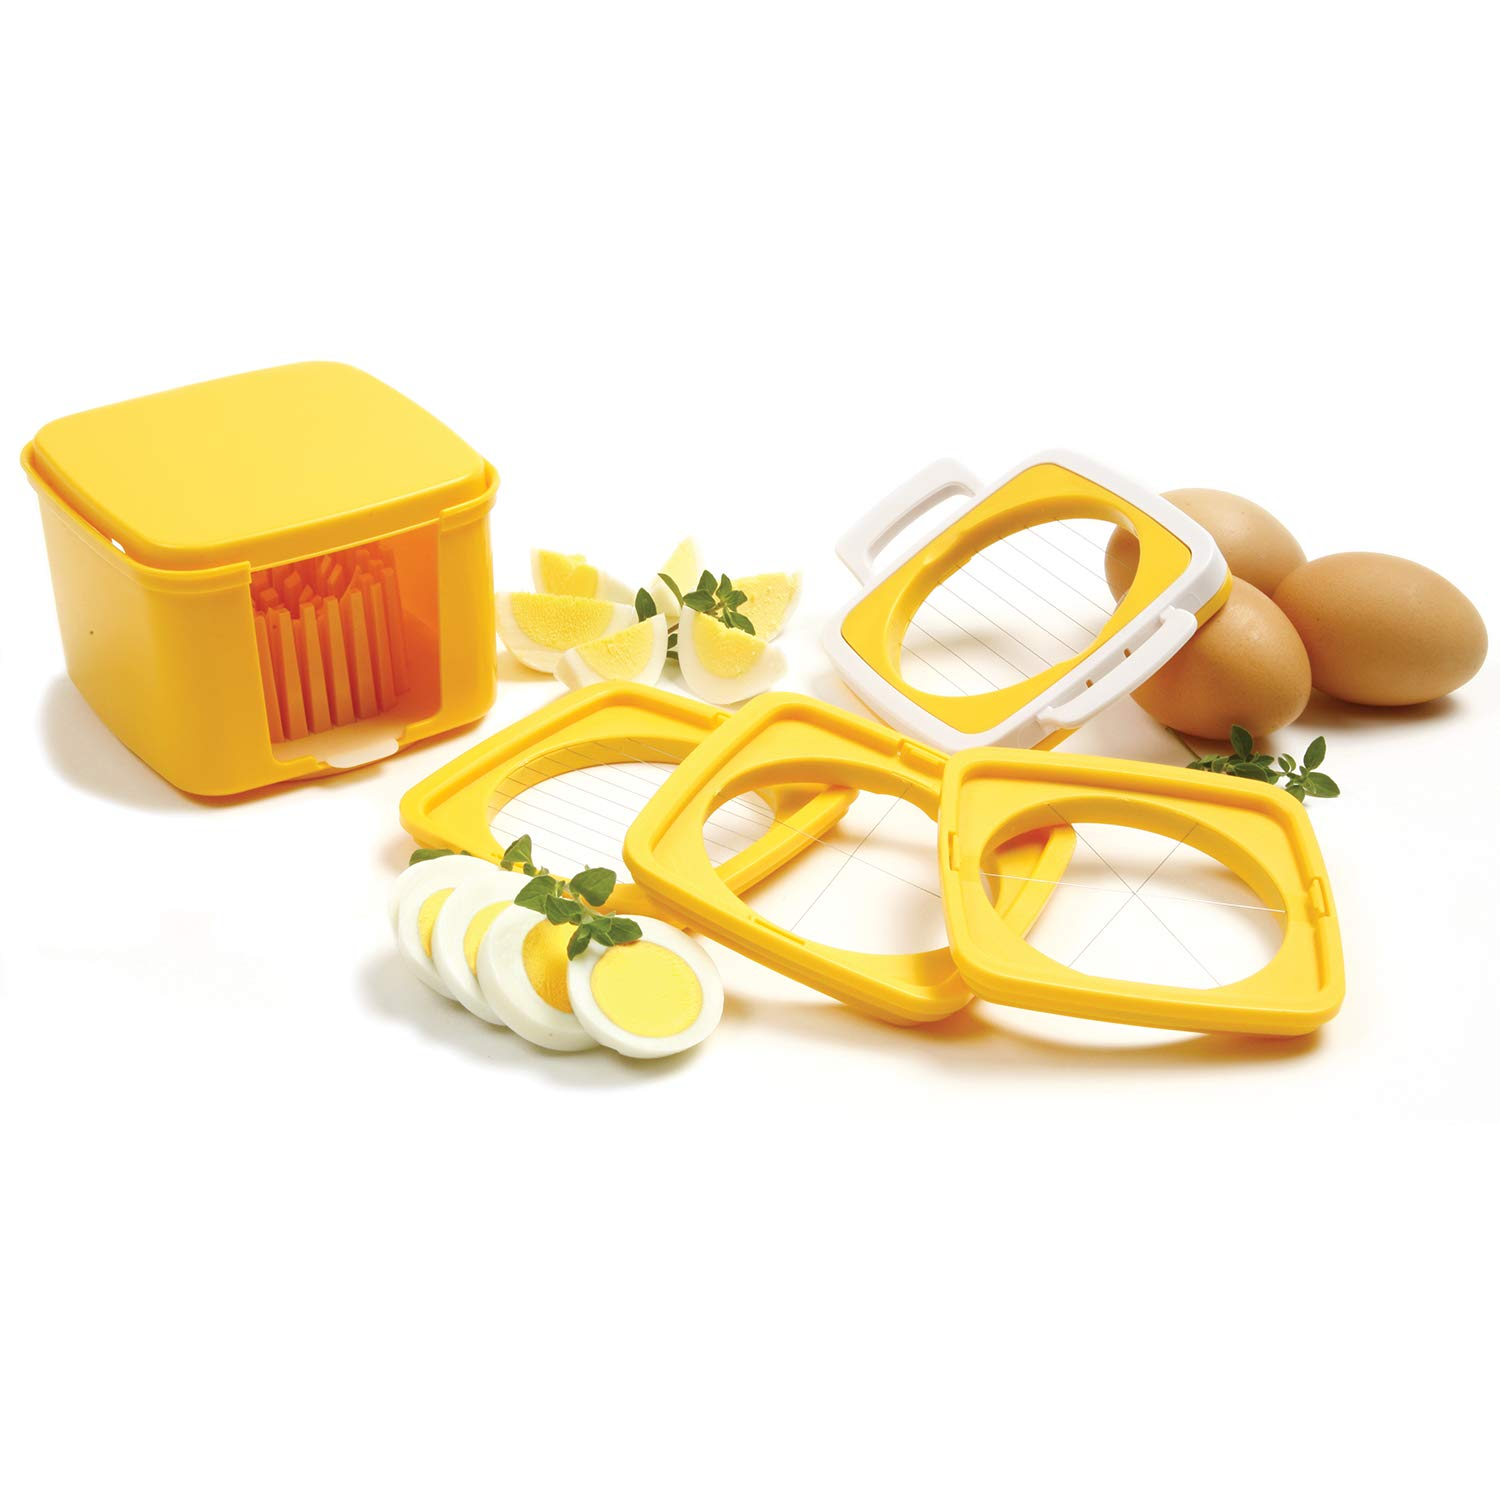 Norpo Yellow 5 Piece Egg Slicer Set with Storage Case by Norpro